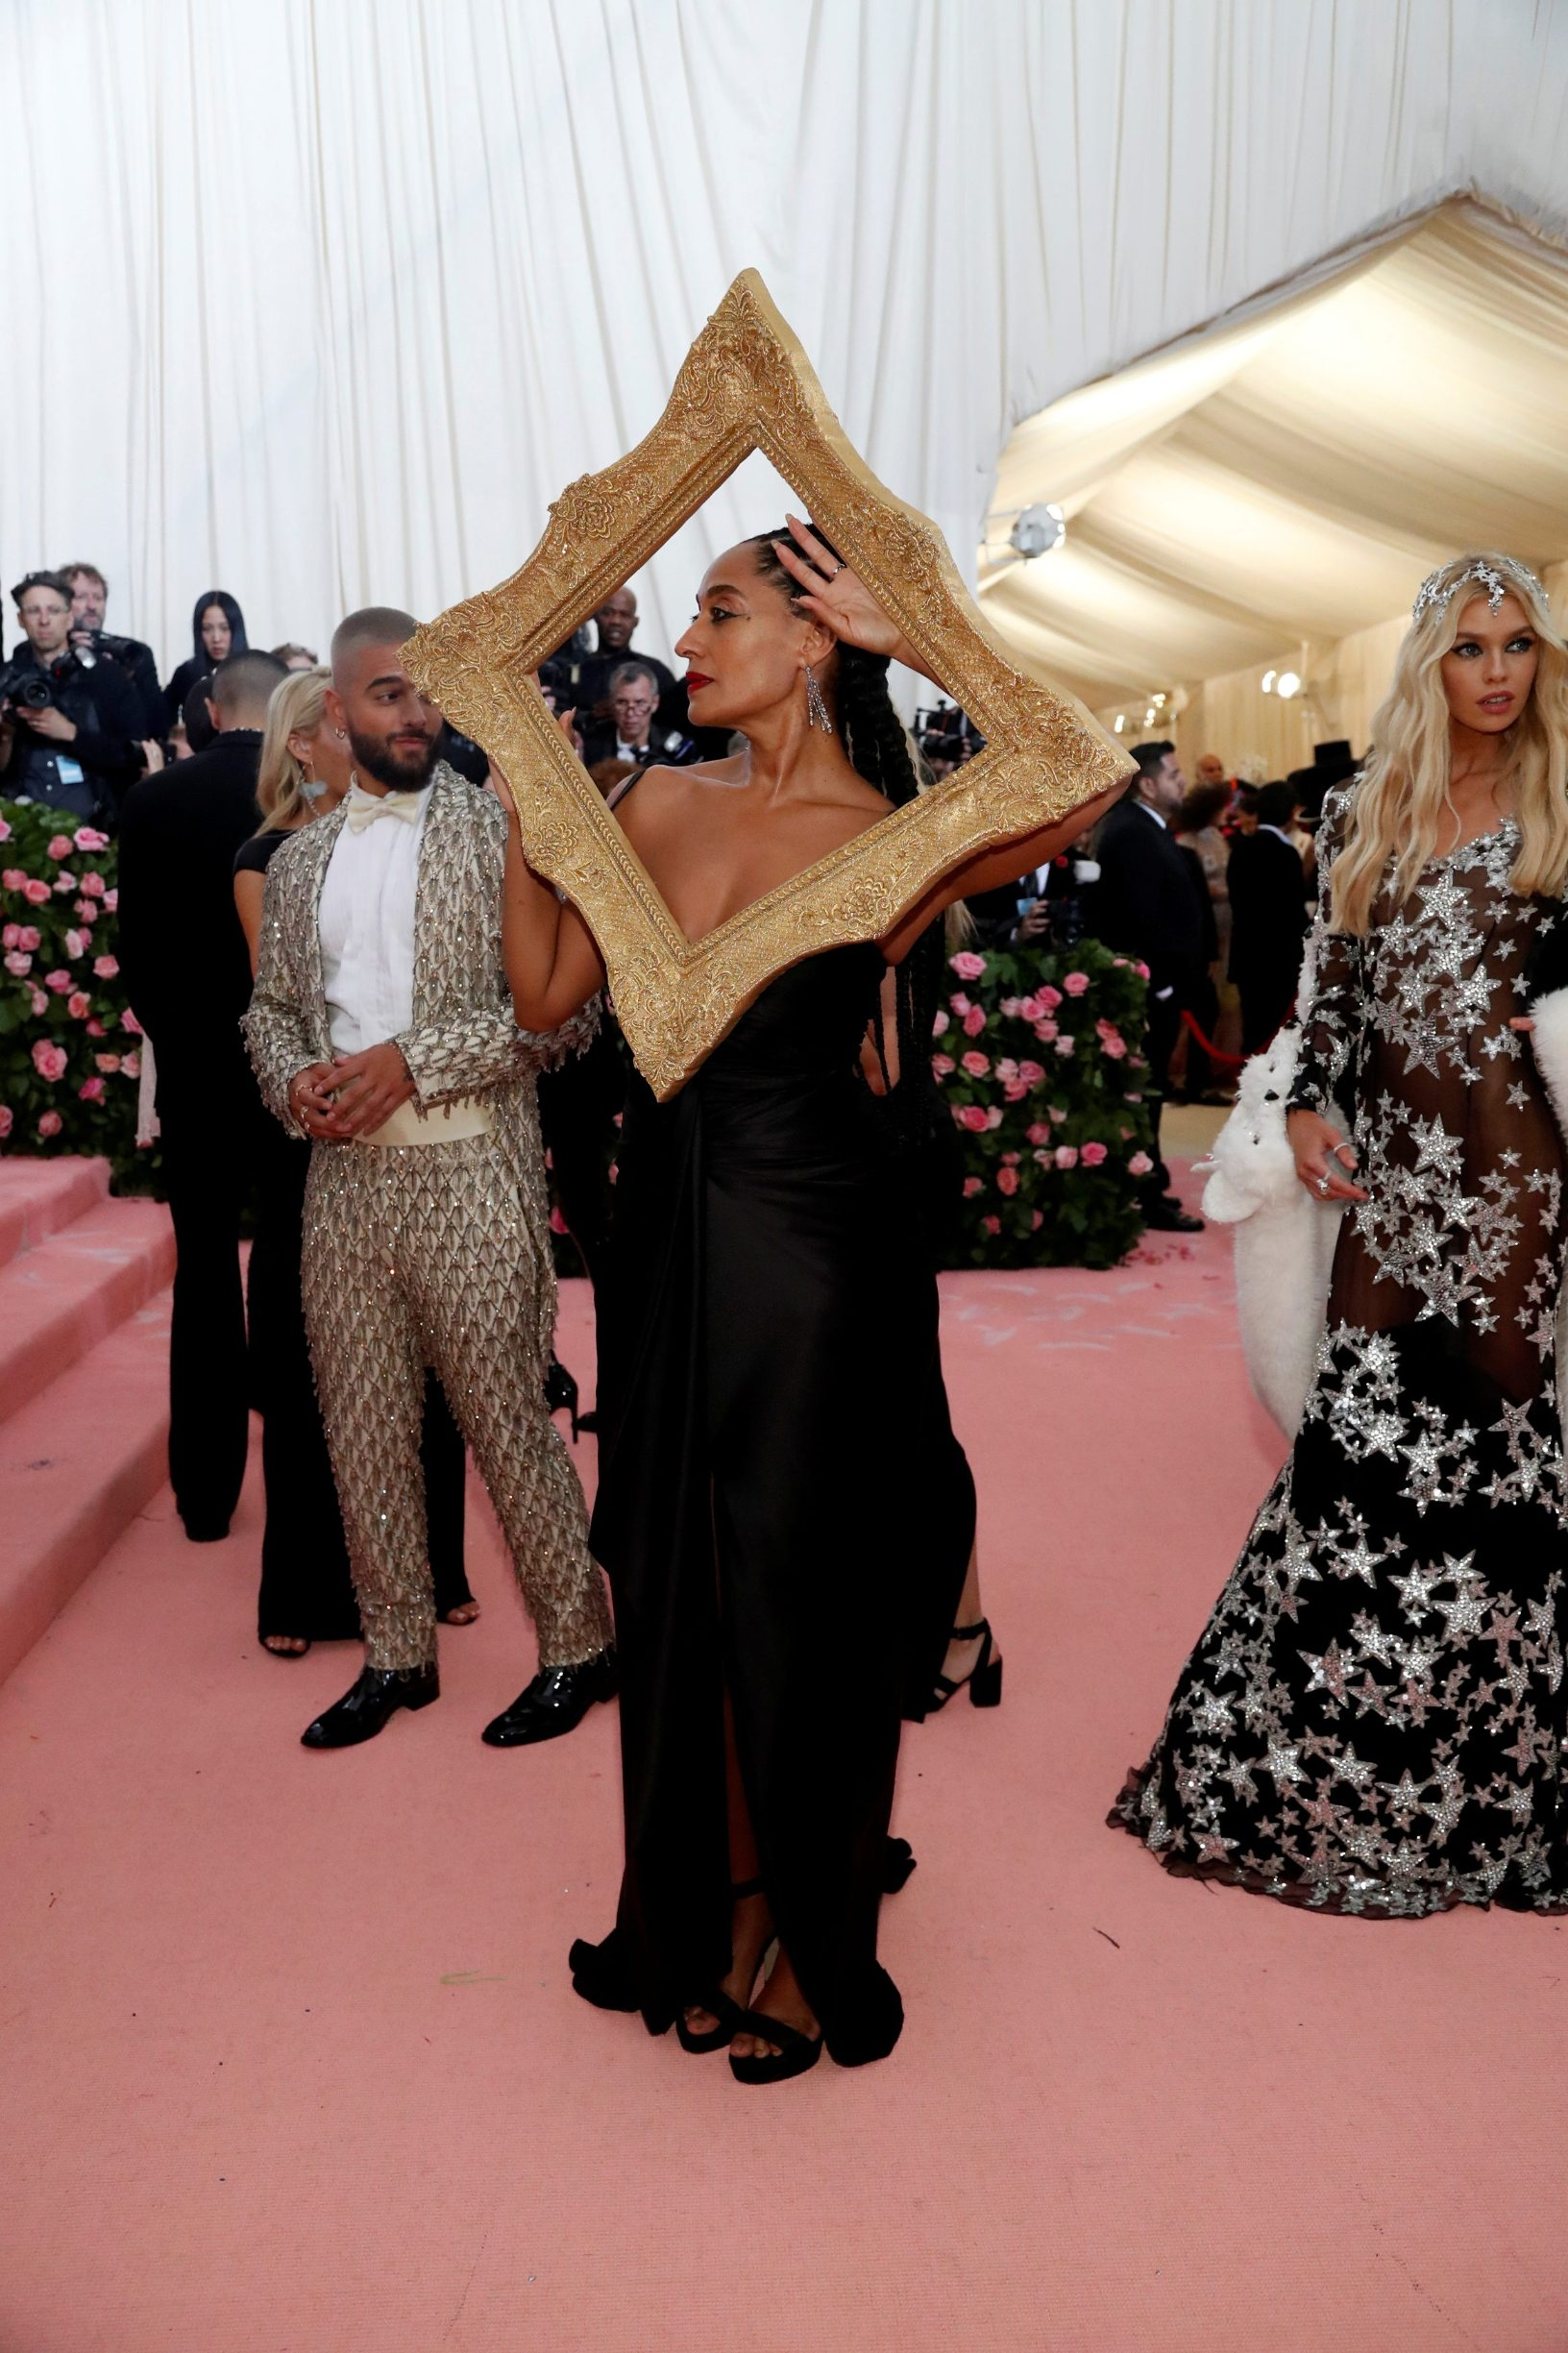 Metropolitan Museum of Art Costume Institute Gala - Met Gala-Camp: Notes on Fashion - Arrivals- New York City, U.S. - May 6, 2019 - Tracee Ellis Ross. REUTERS/Mario Anzuoni